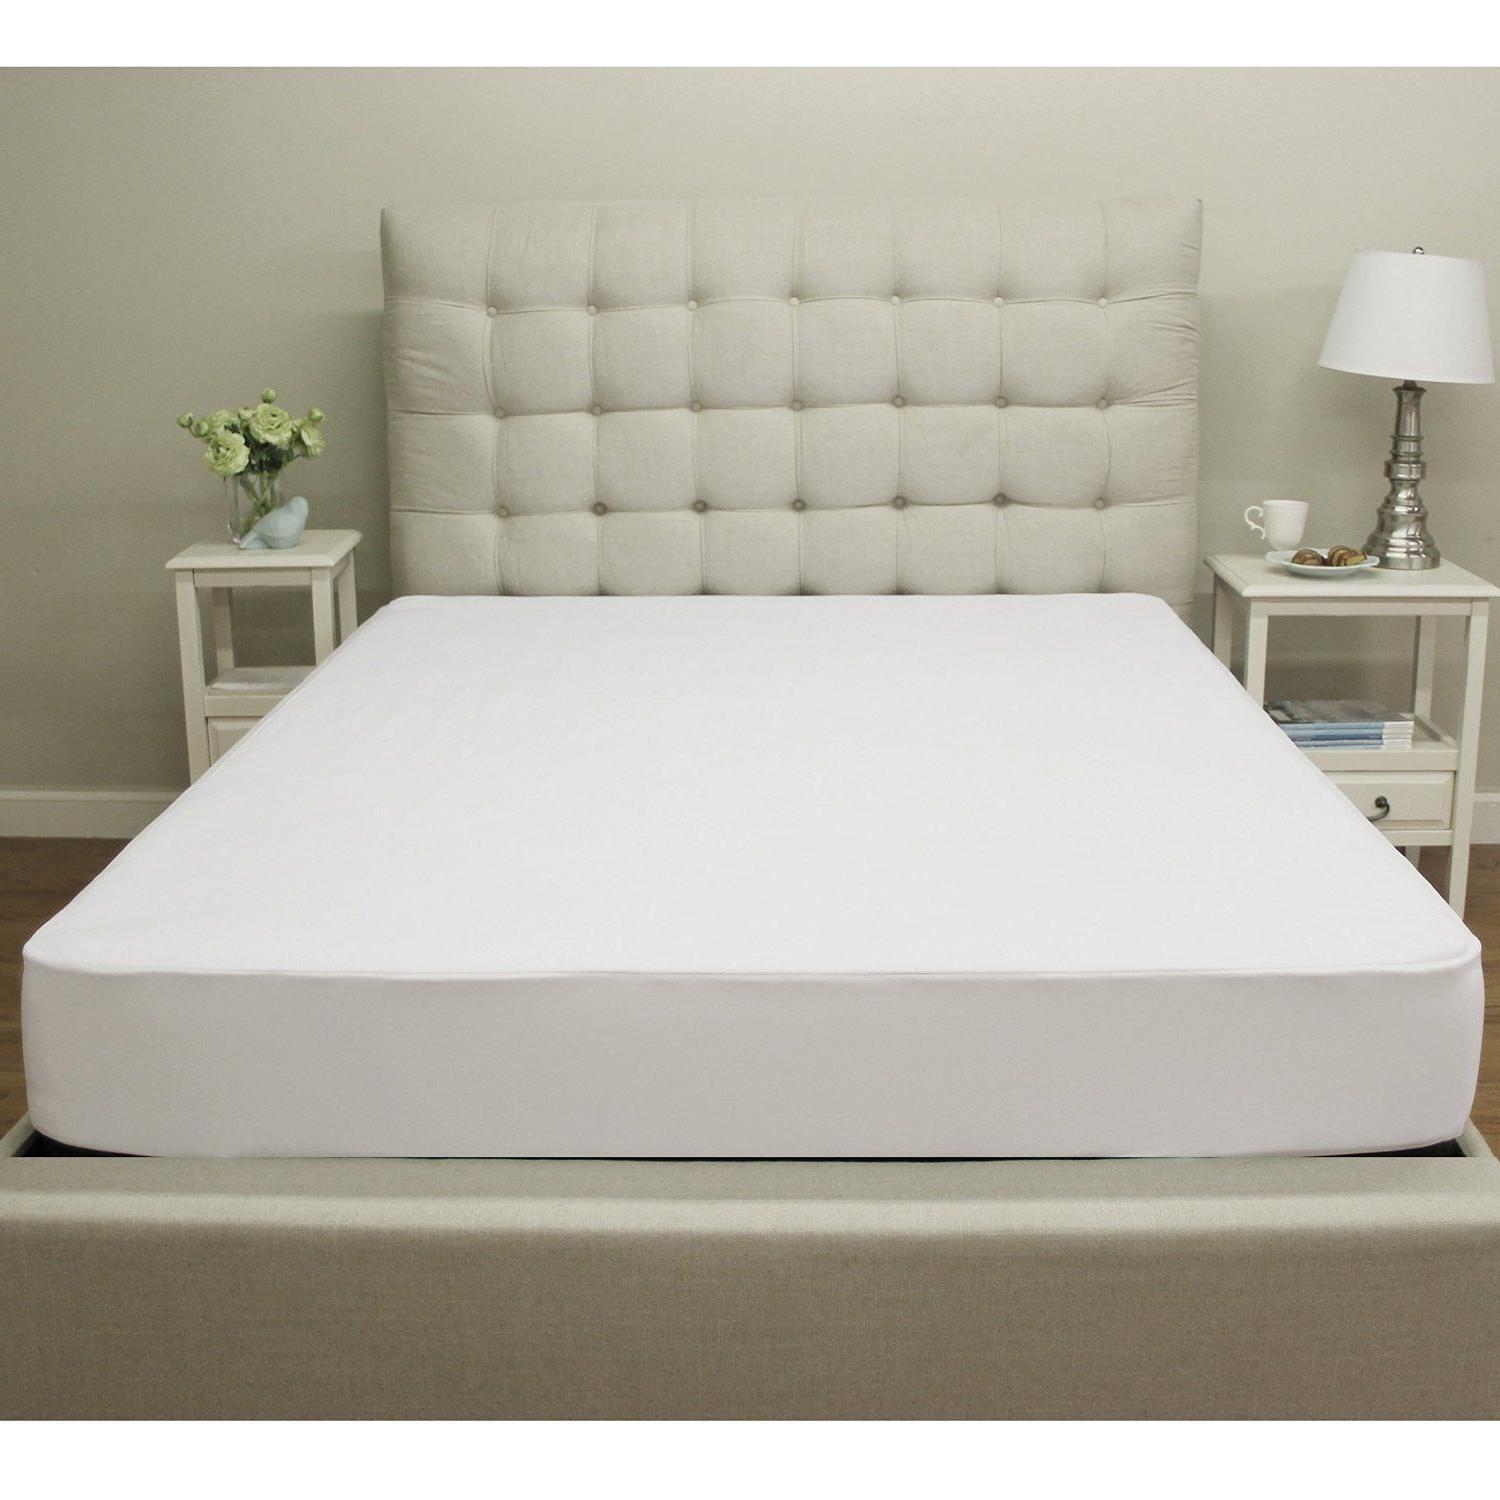 King Size Pad Cover Hypoallergenic Soft